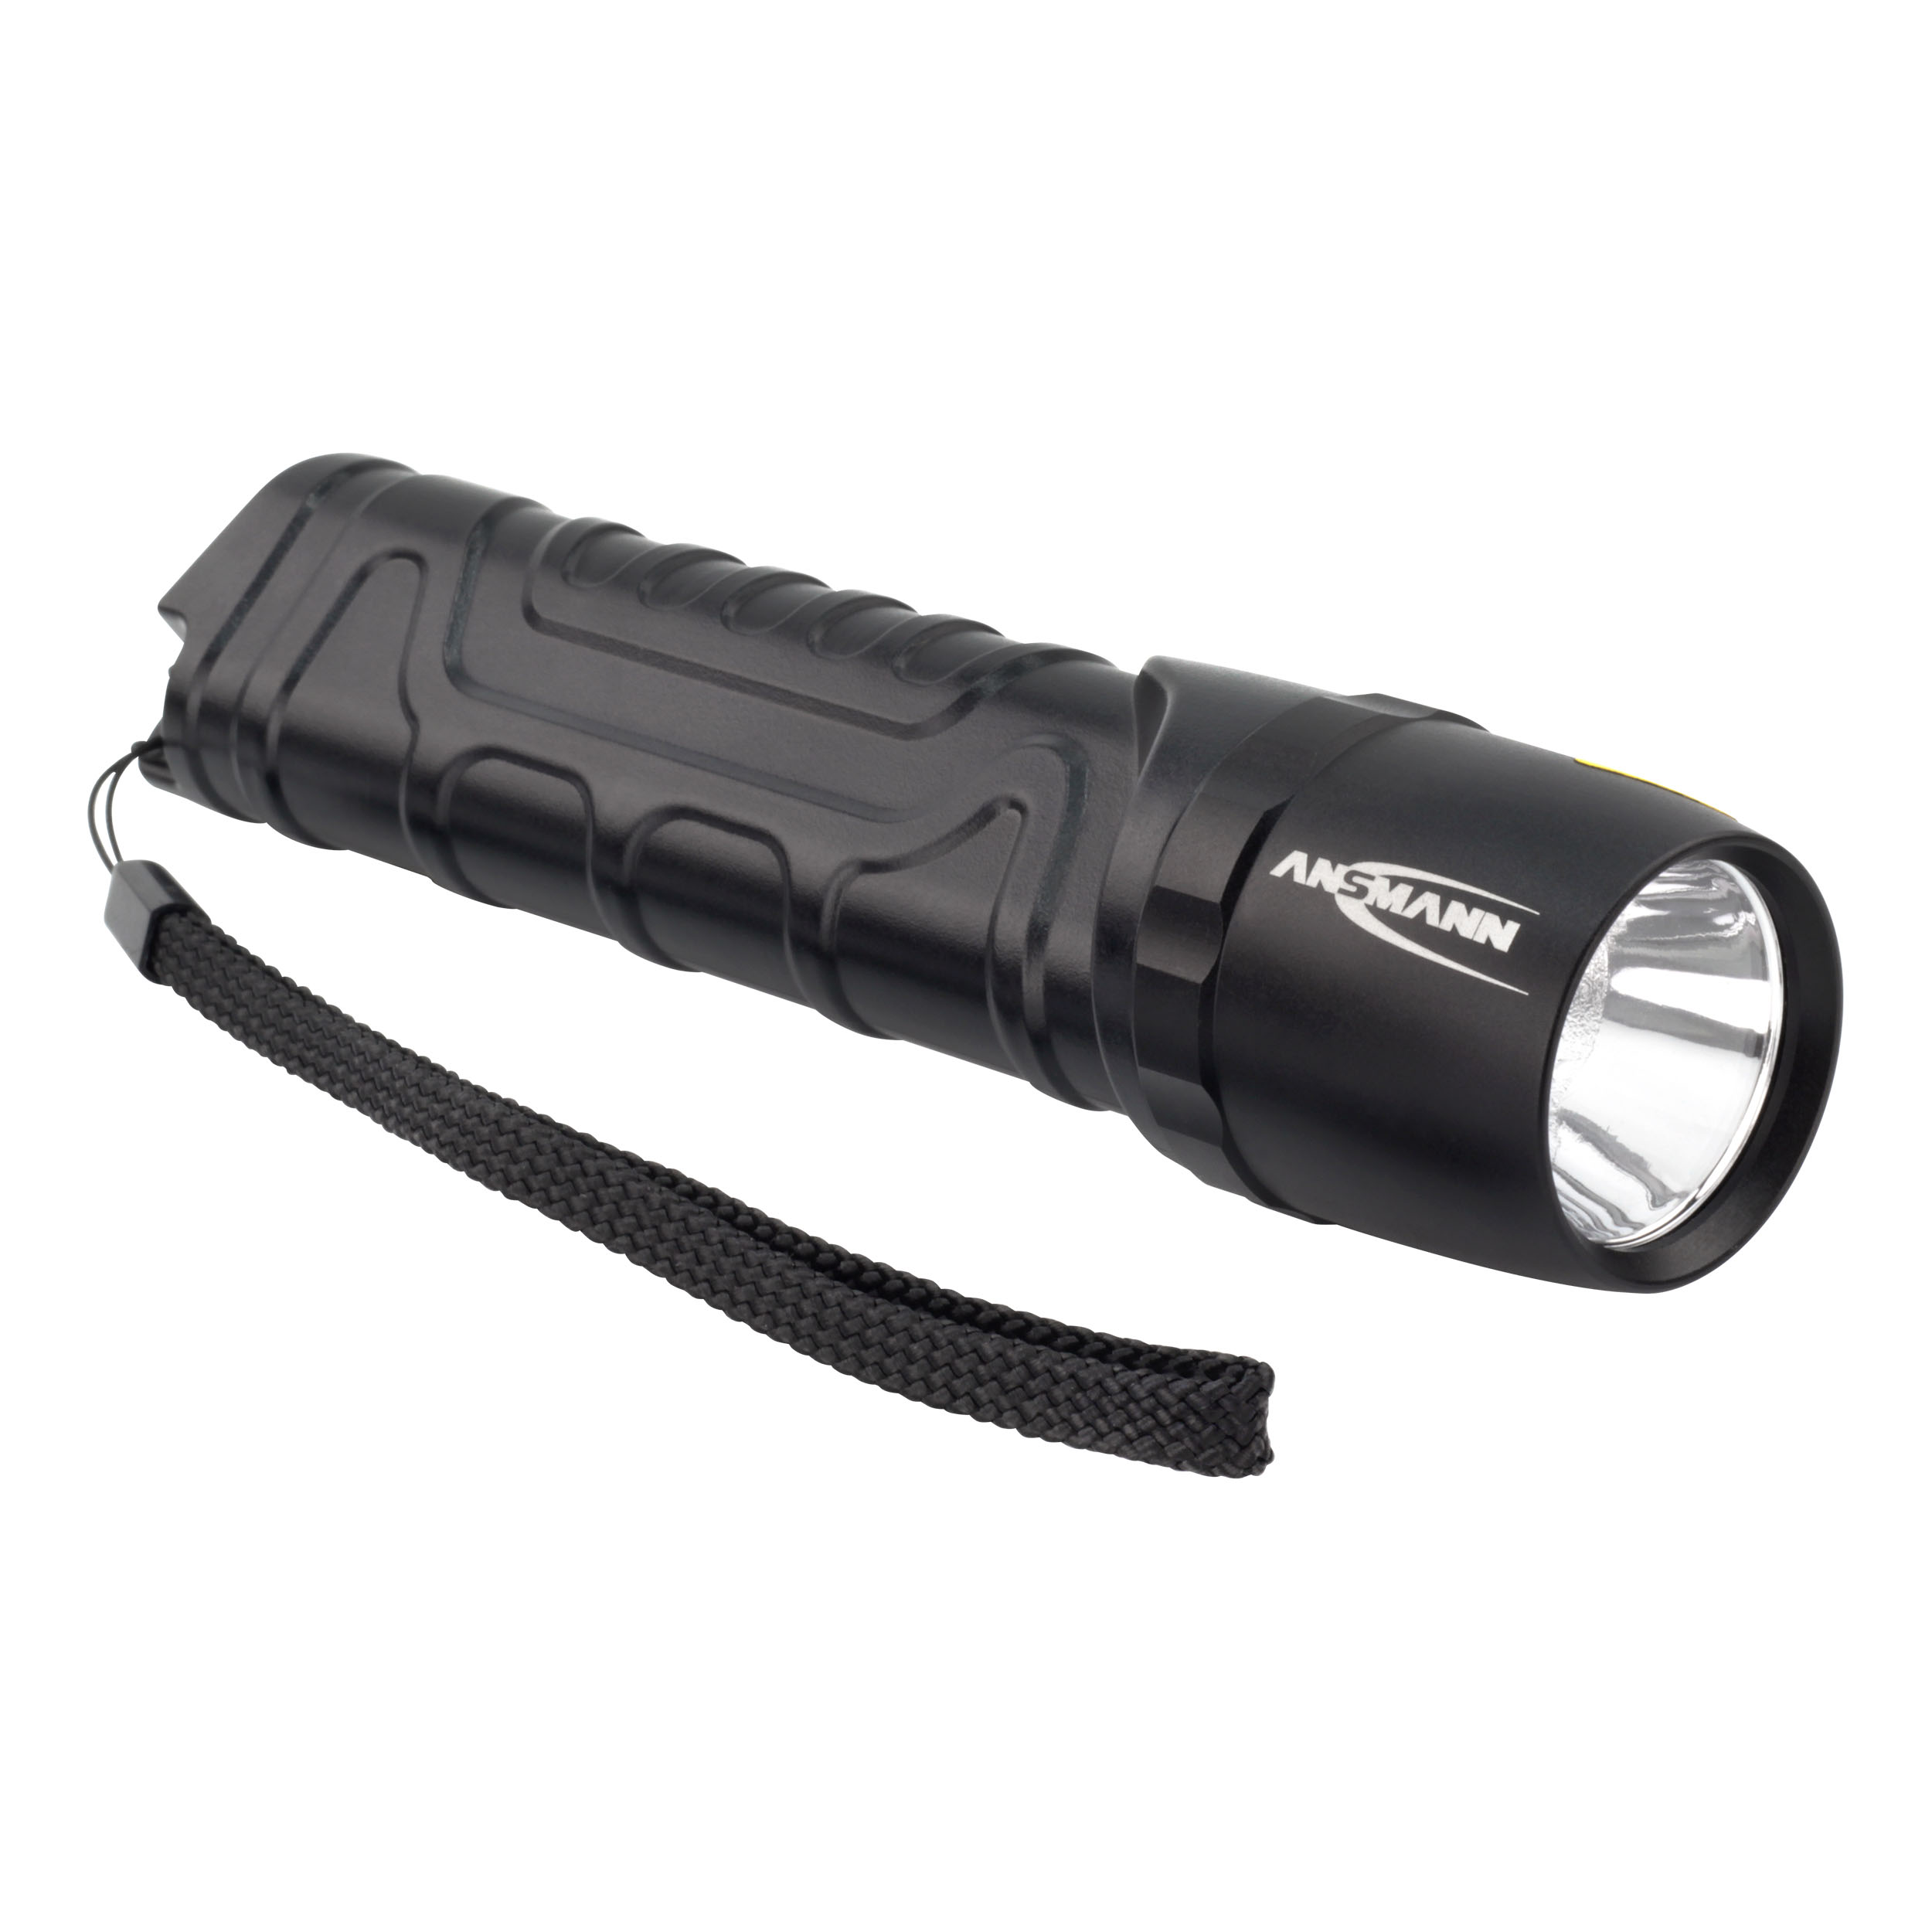 Ansmann M900P 1600-0162 LED Torch